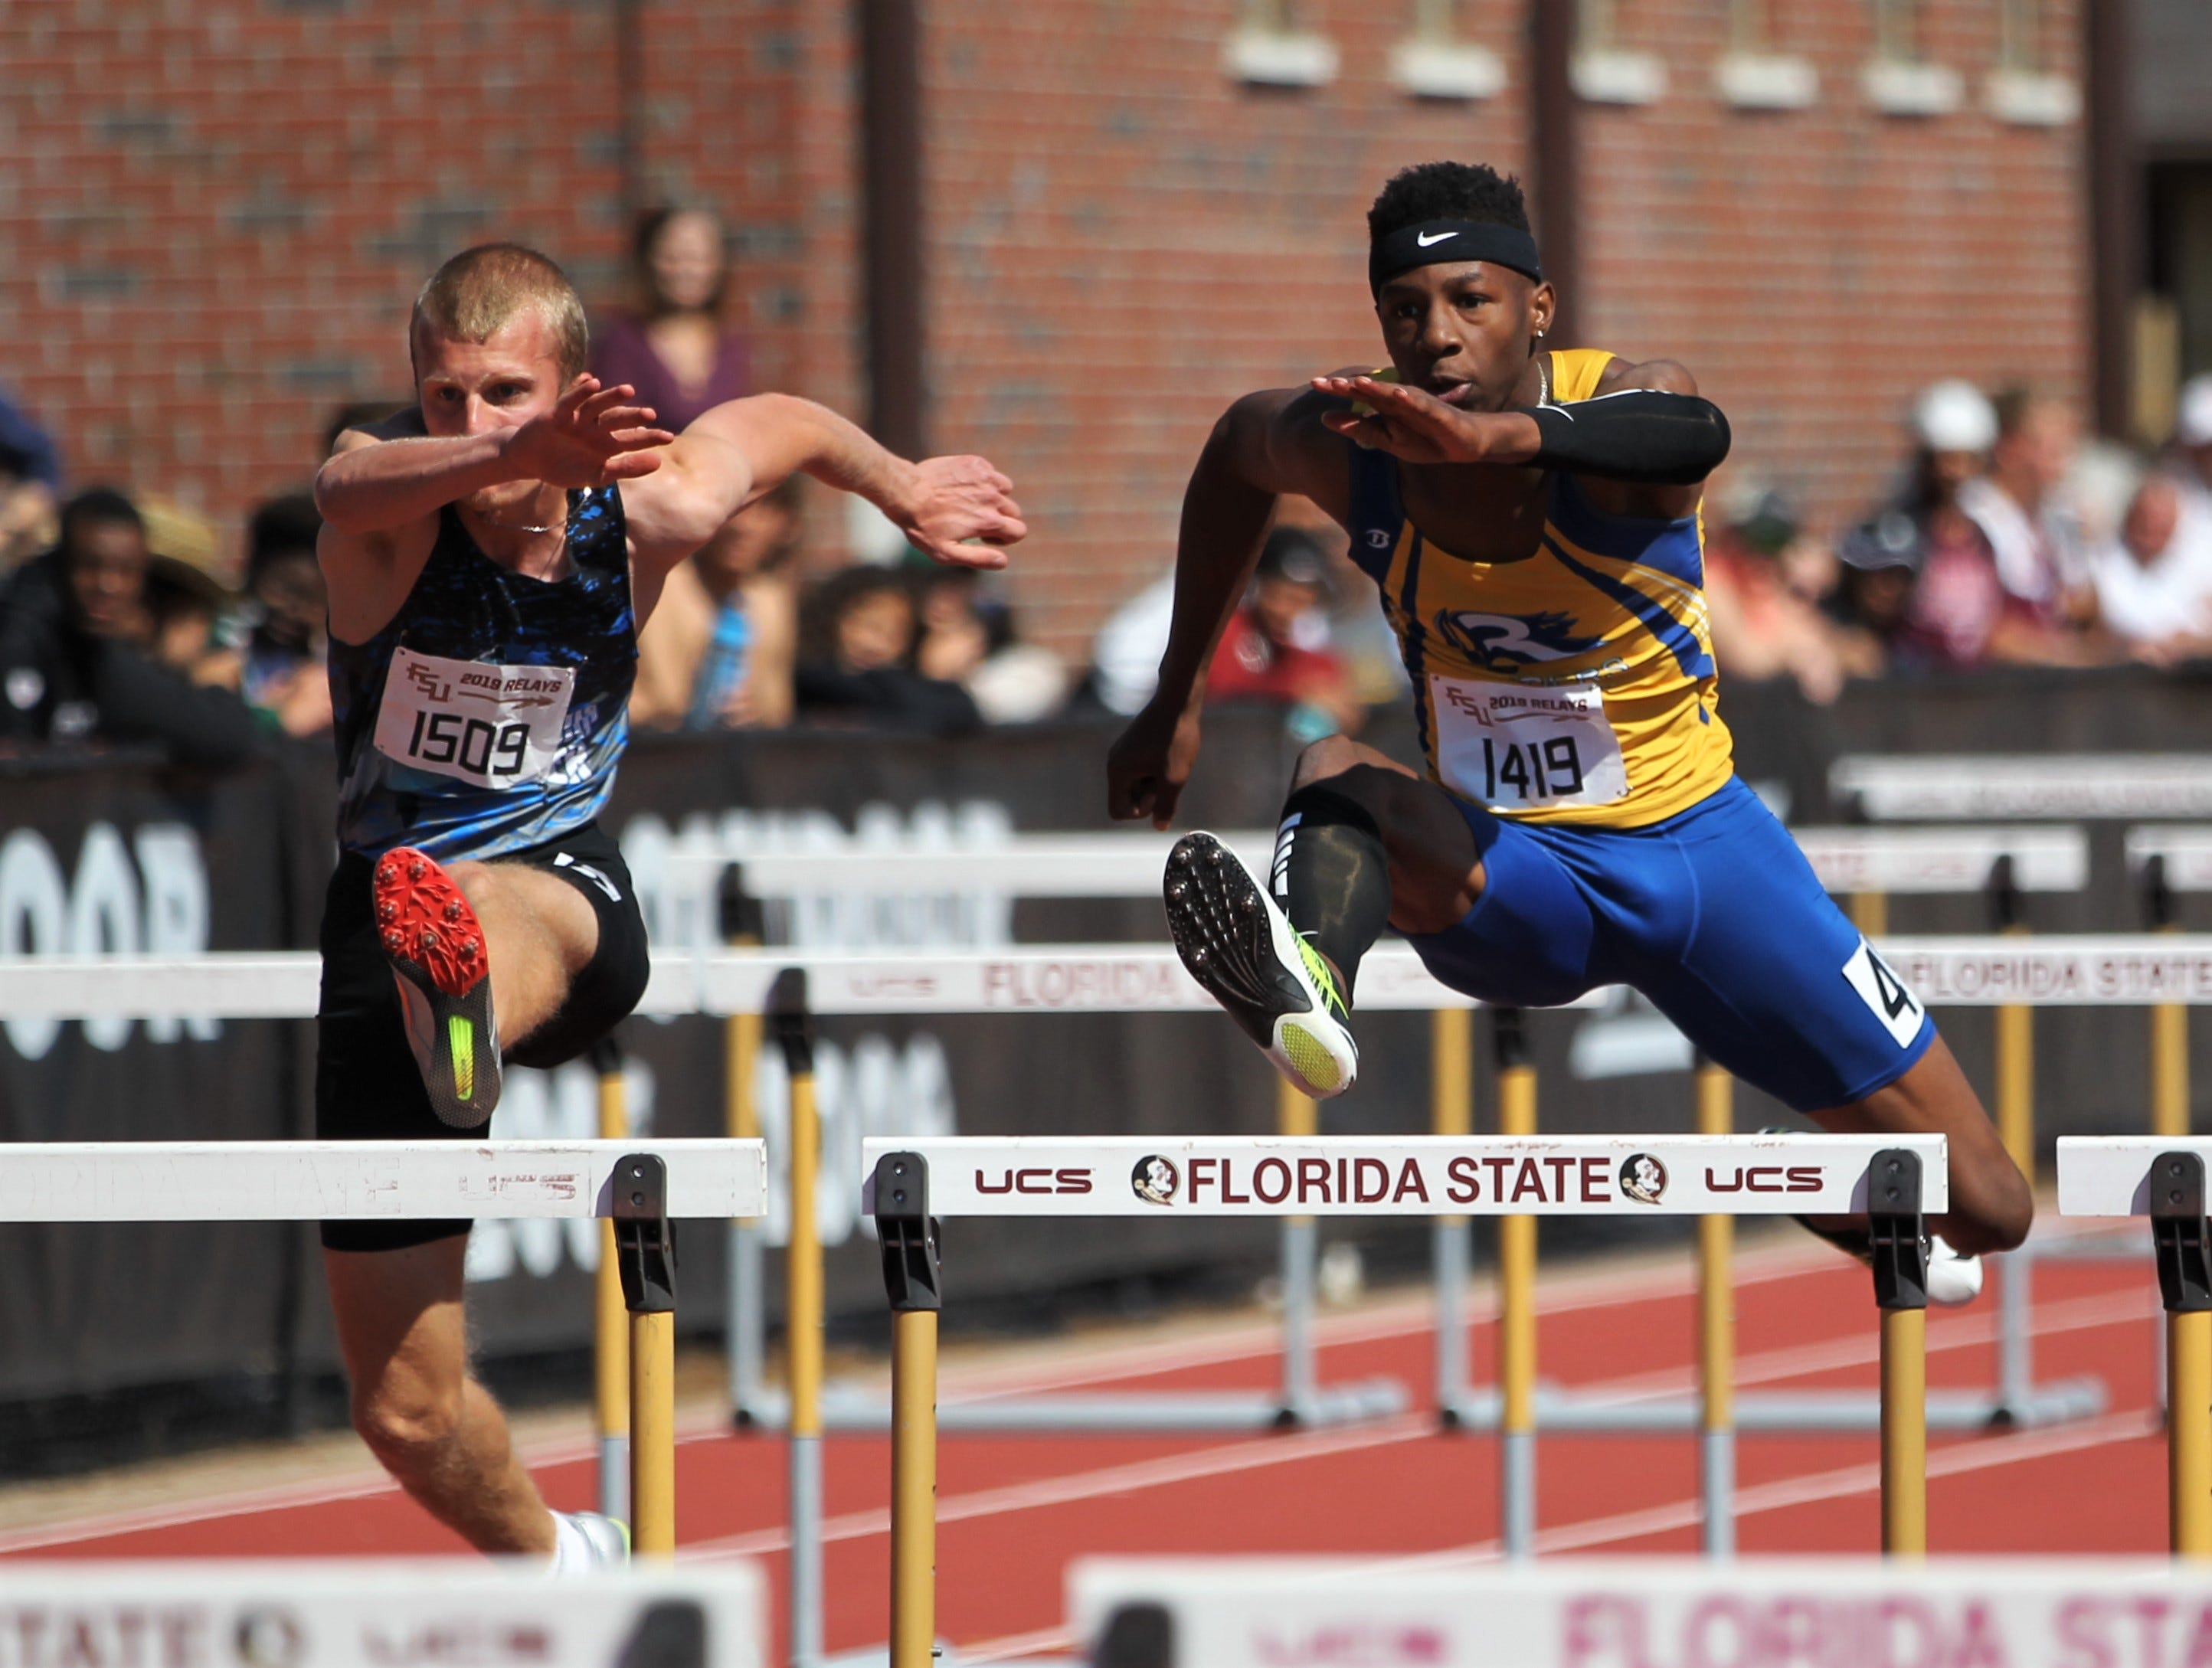 Rickards senior Chris Robinson runs the 110-meter high hurdles during the 40th annual FSU Relays at Mike Long Track on Saturday, March 23, 2019.